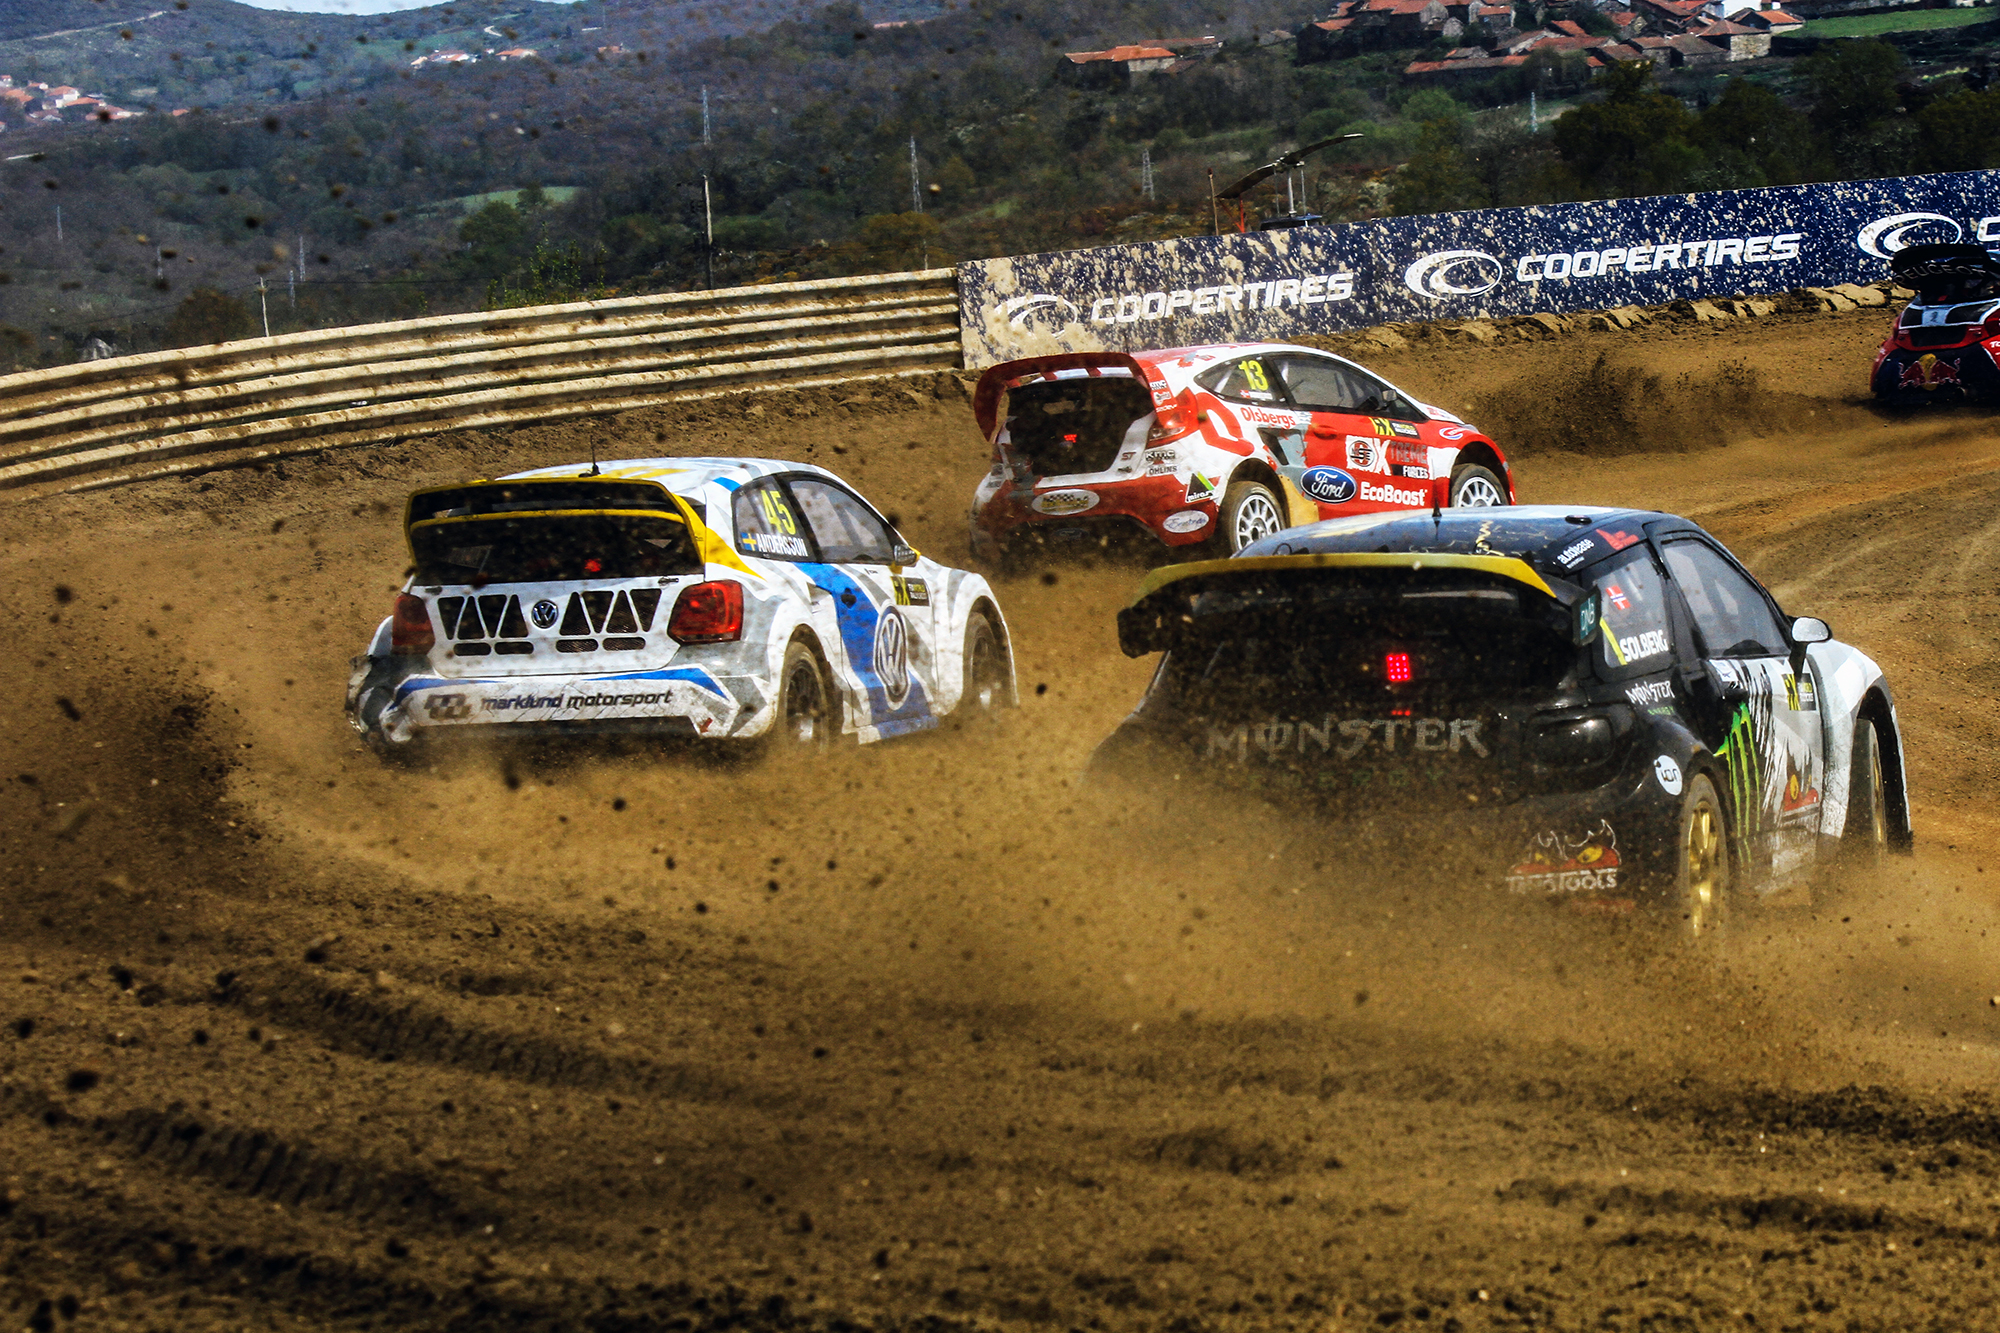 Fia World Rallycross To Mix It Up With Dtm At Hockenheim